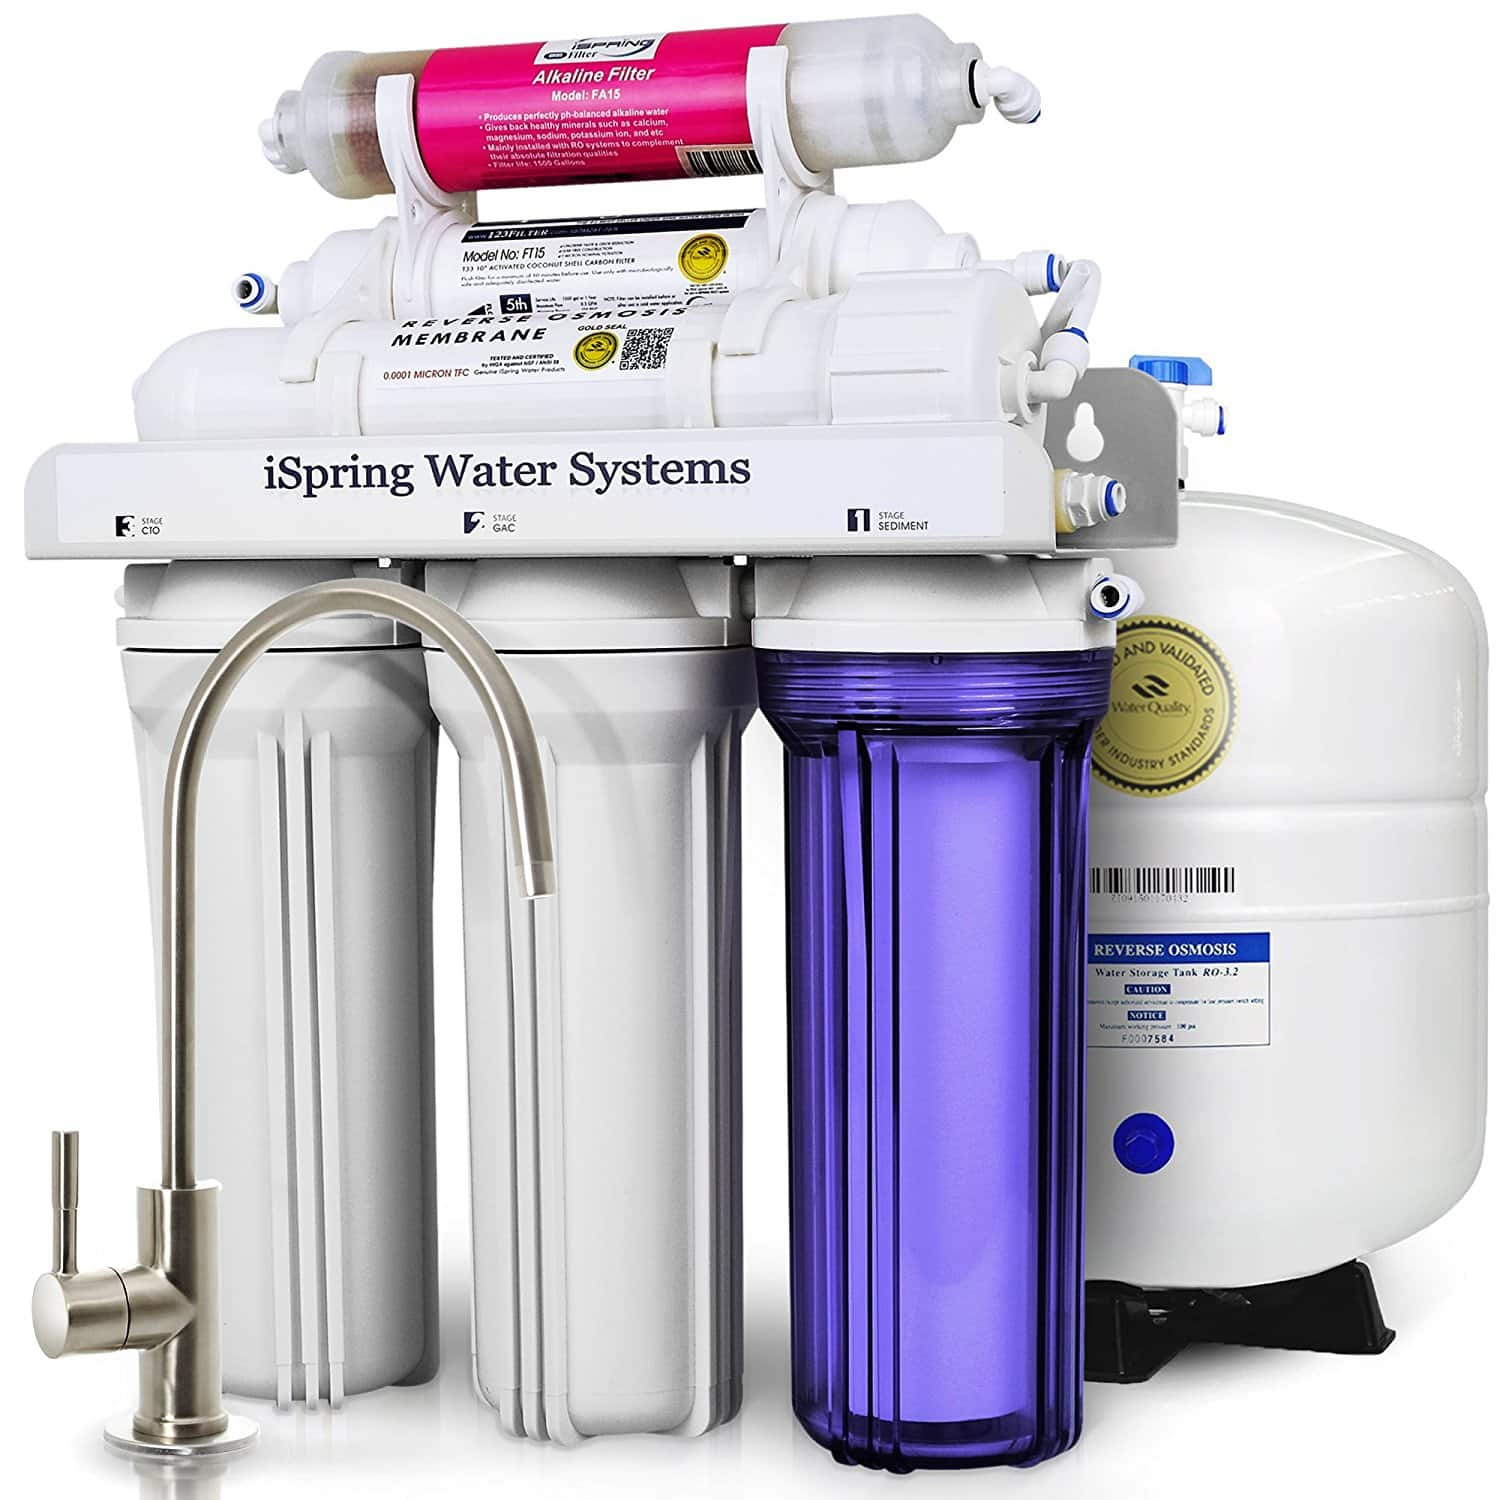 Top 10 Best Undersink Reverse Osmosis Water Filter Systems